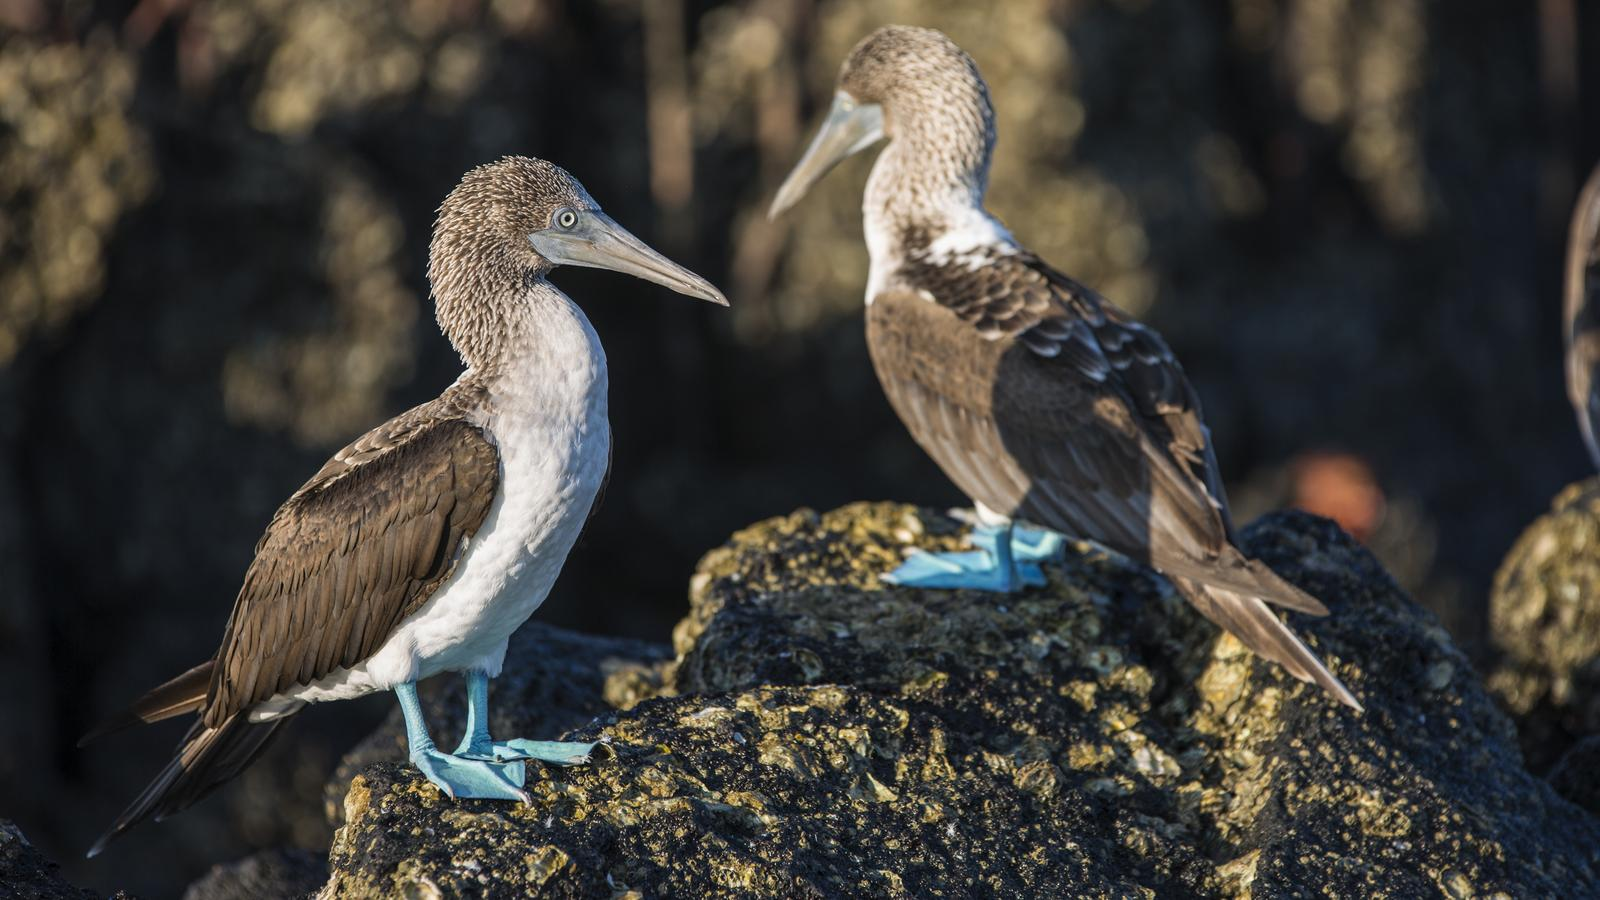 Galápagos — West, Central and East Islands aboard the Monserrat